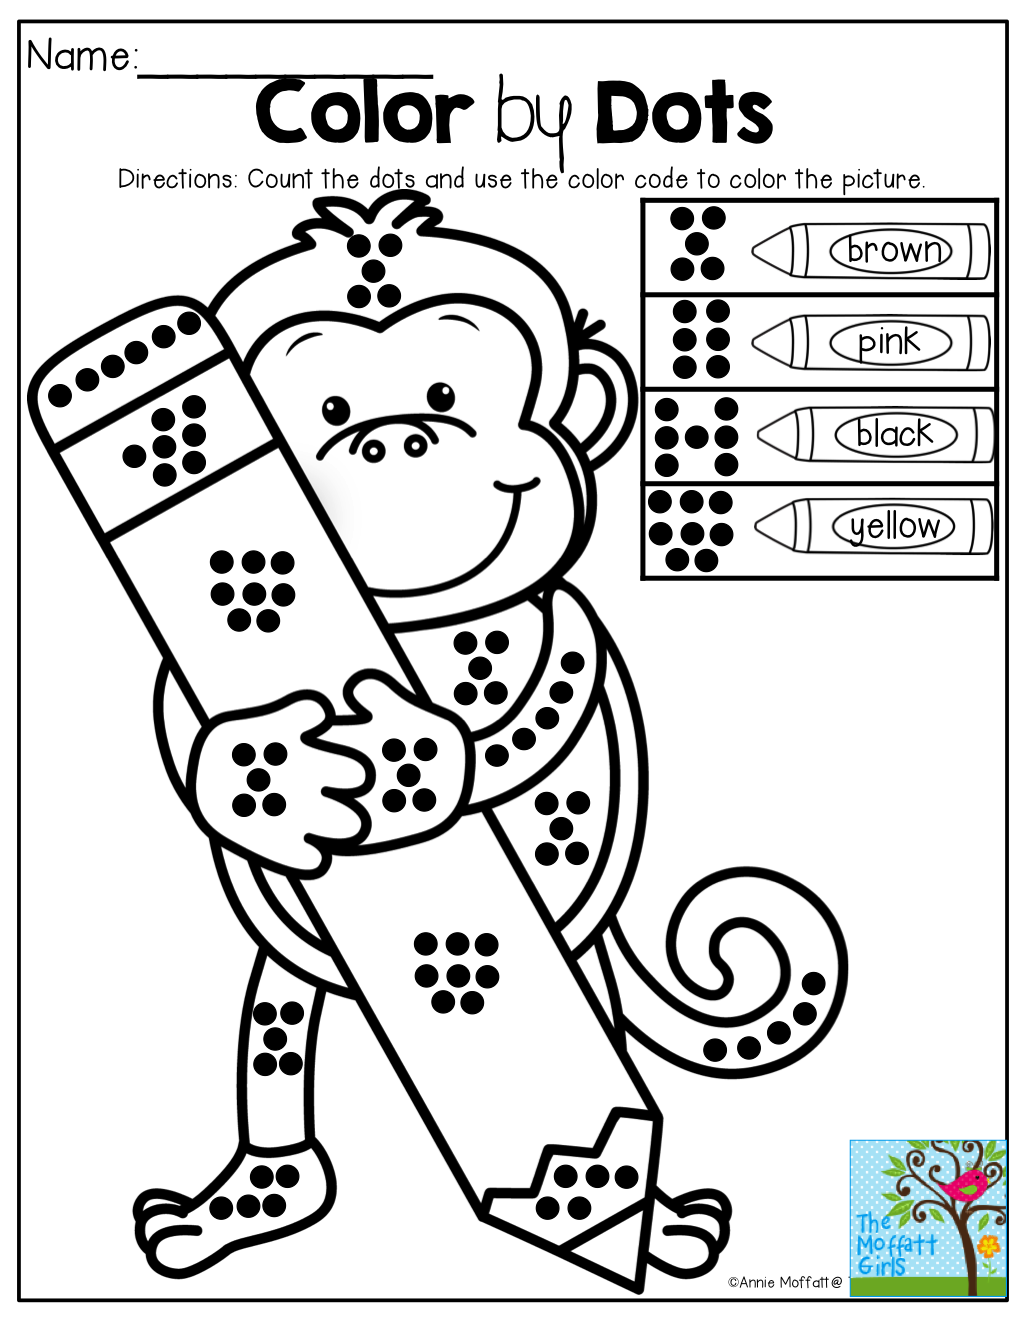 Color By Dots Great For Counting Number Sense And Color Word Recognition Tons Of Back To